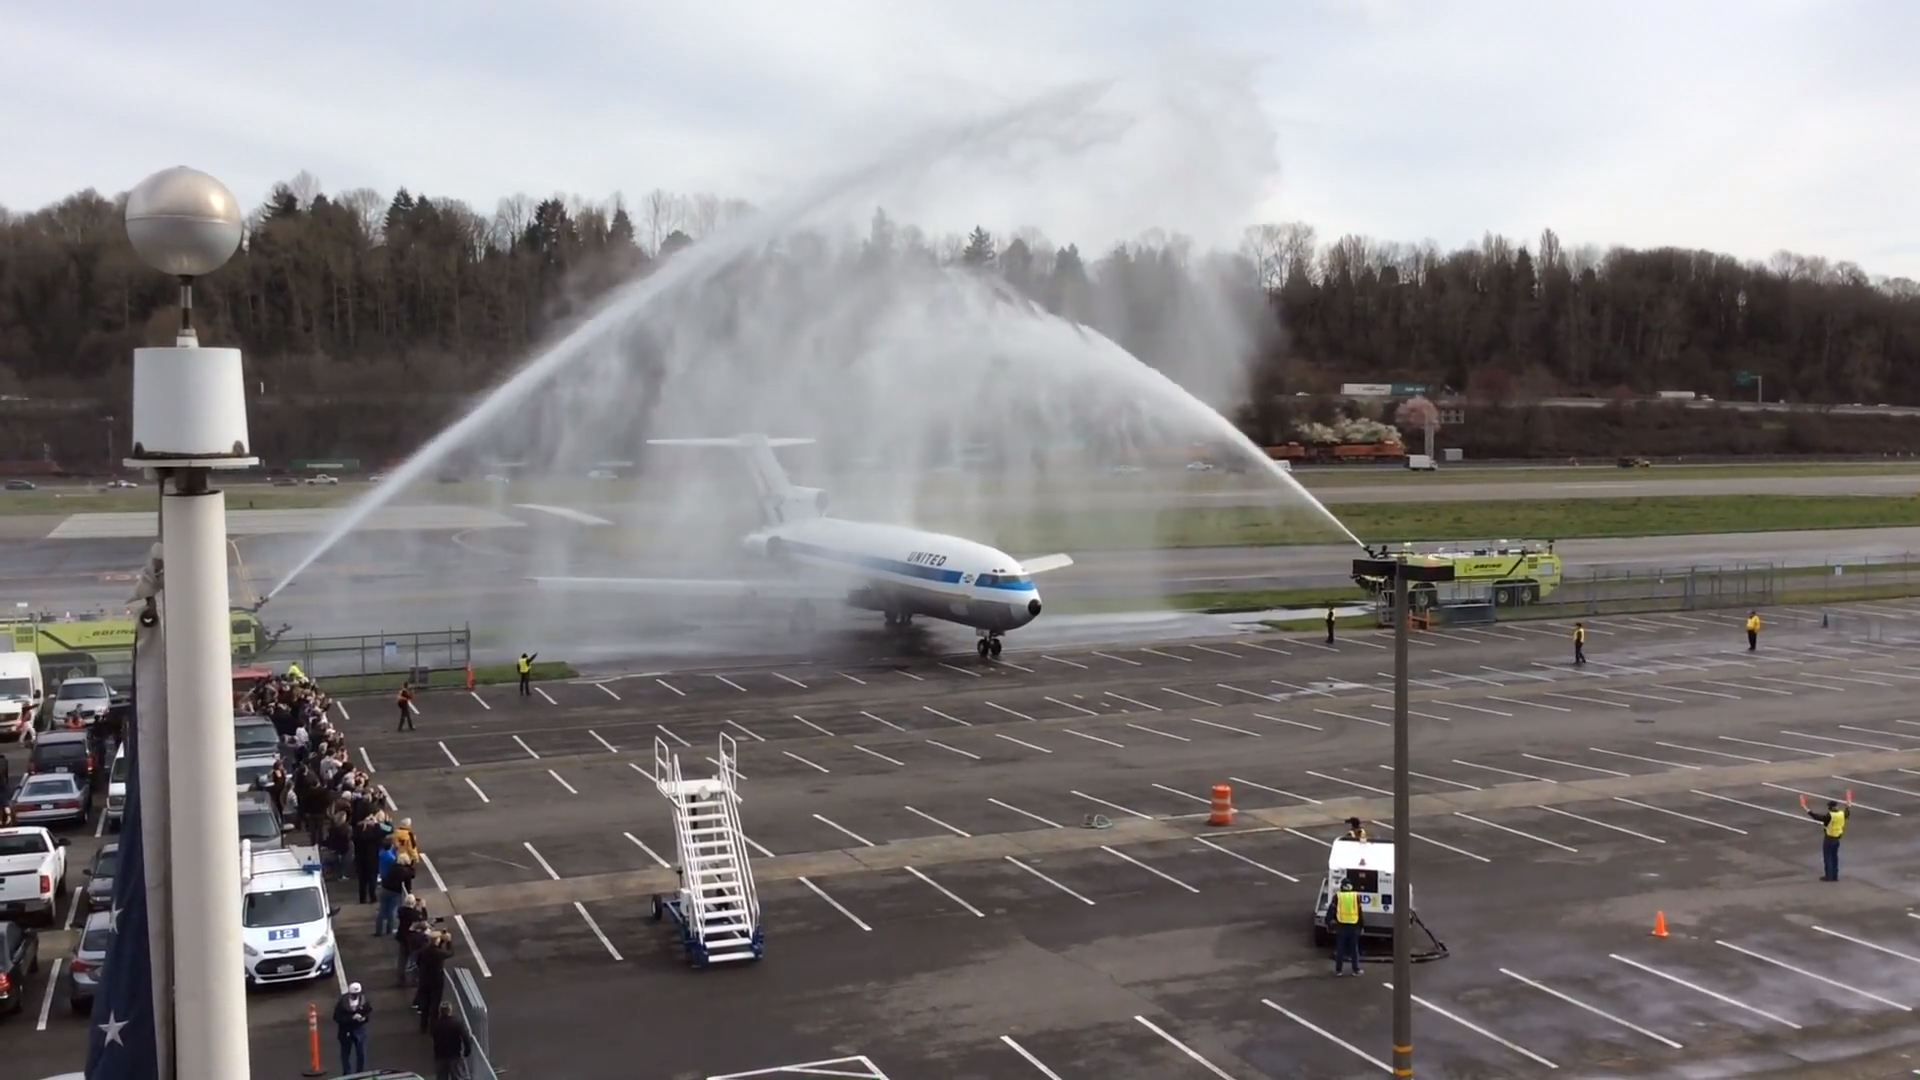 Final landing and taxi of the first Boeing 727